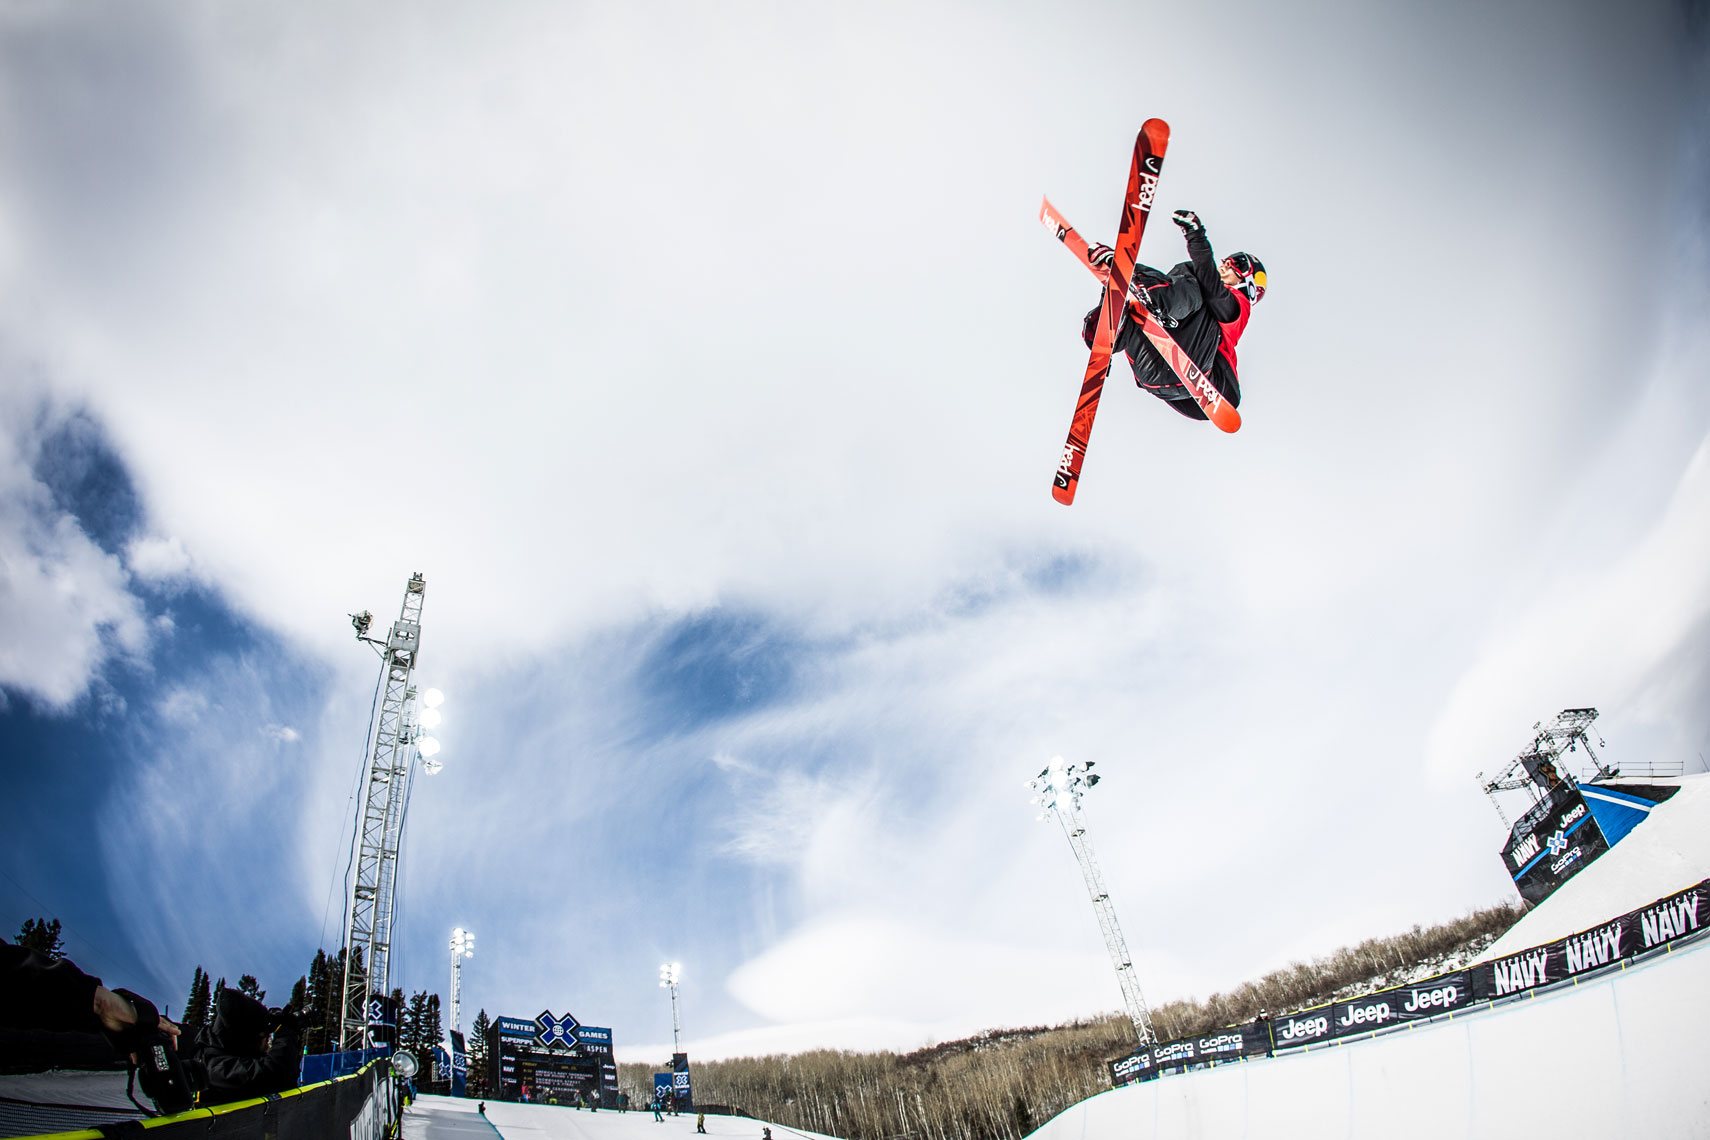 X Games Action Sports Photographer